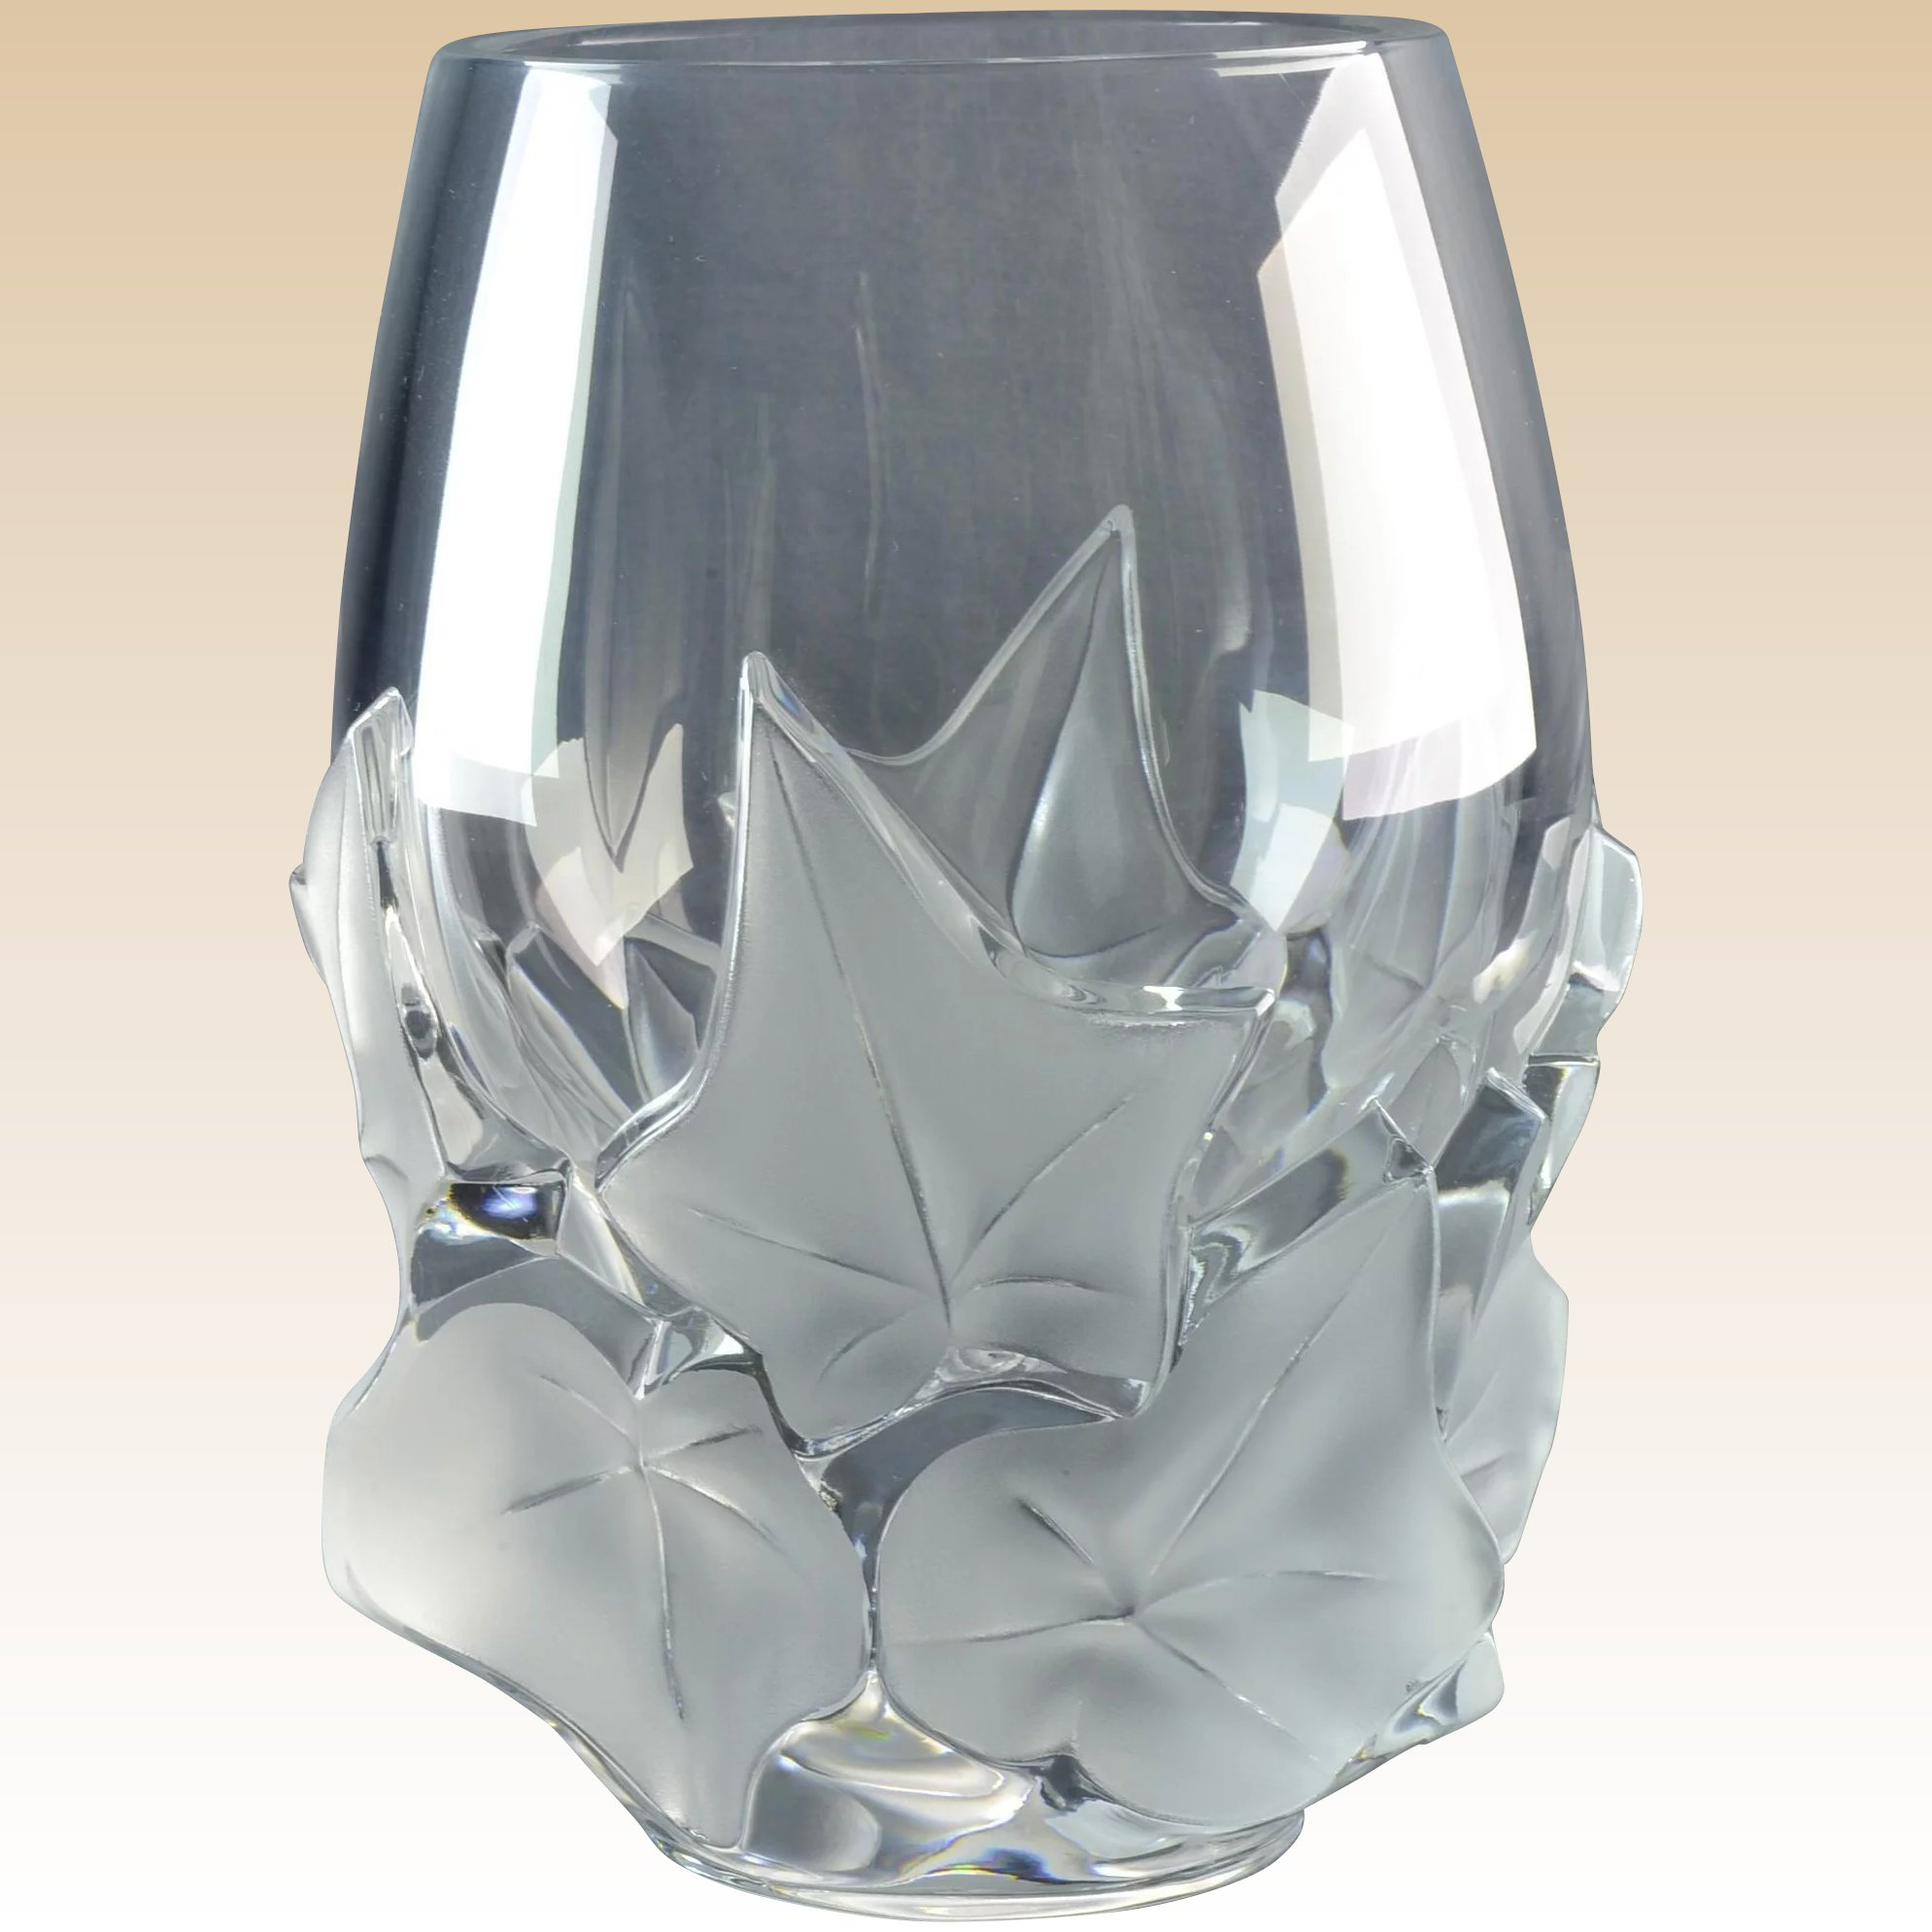 Lalique crystal vase 1980 hedera ivy vase kings fortune ruby lane lalique crystal vase 1980 hedera ivy vase click to expand reviewsmspy